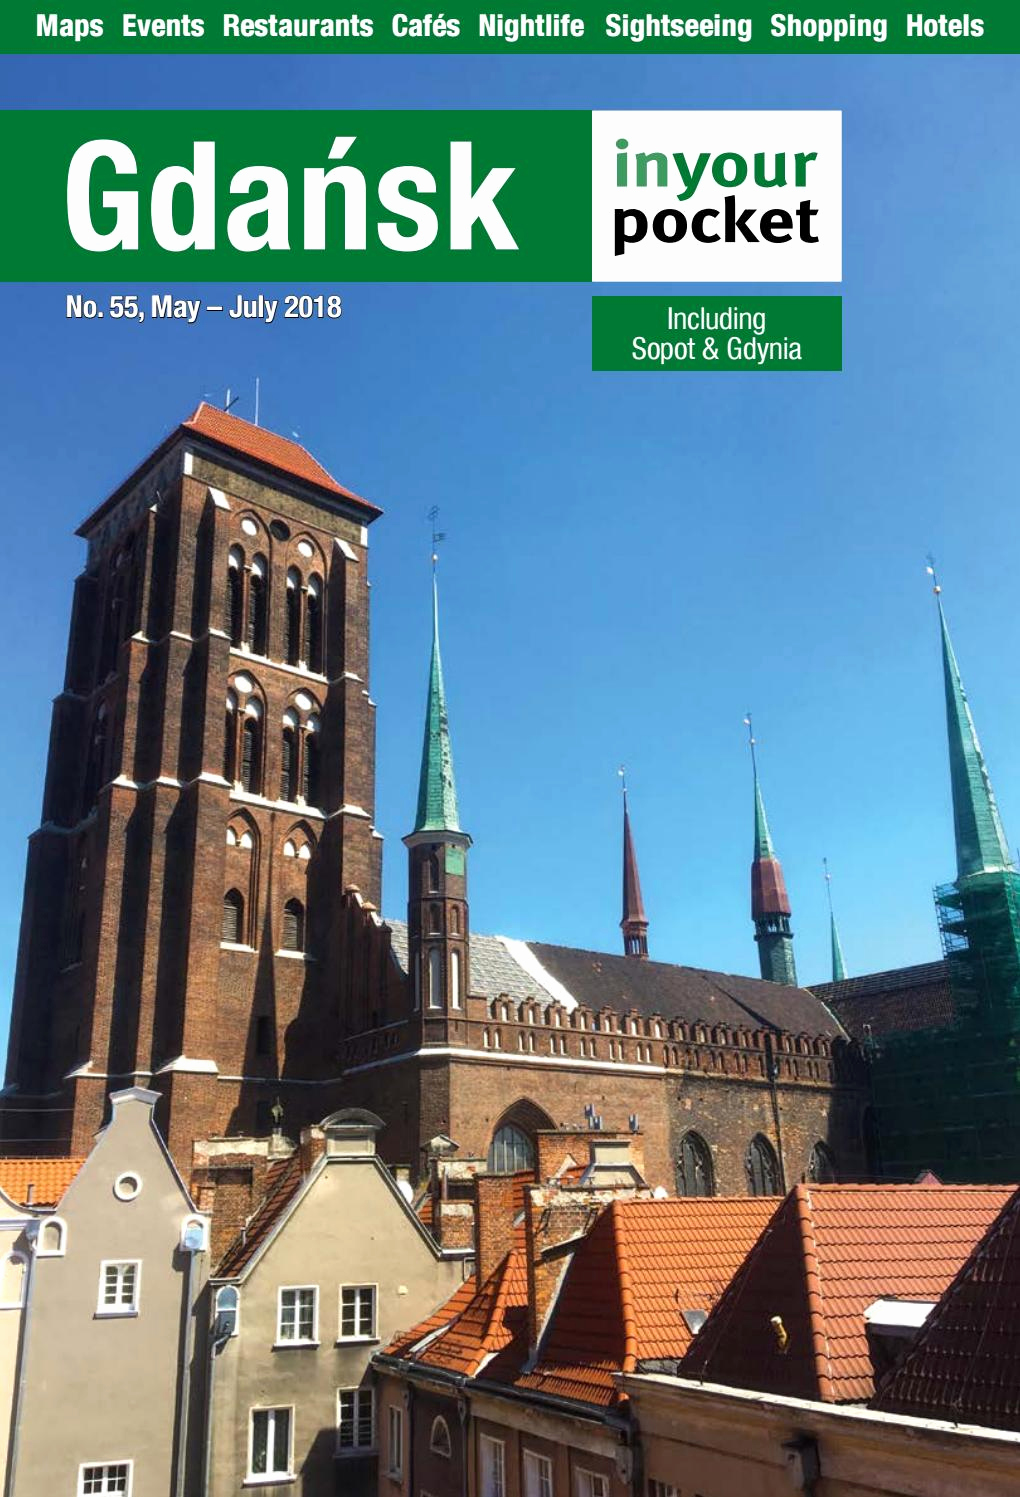 New Wave Villeroy & Boch Neu Gdansk In Your Pocket by In Your Pocket issuu